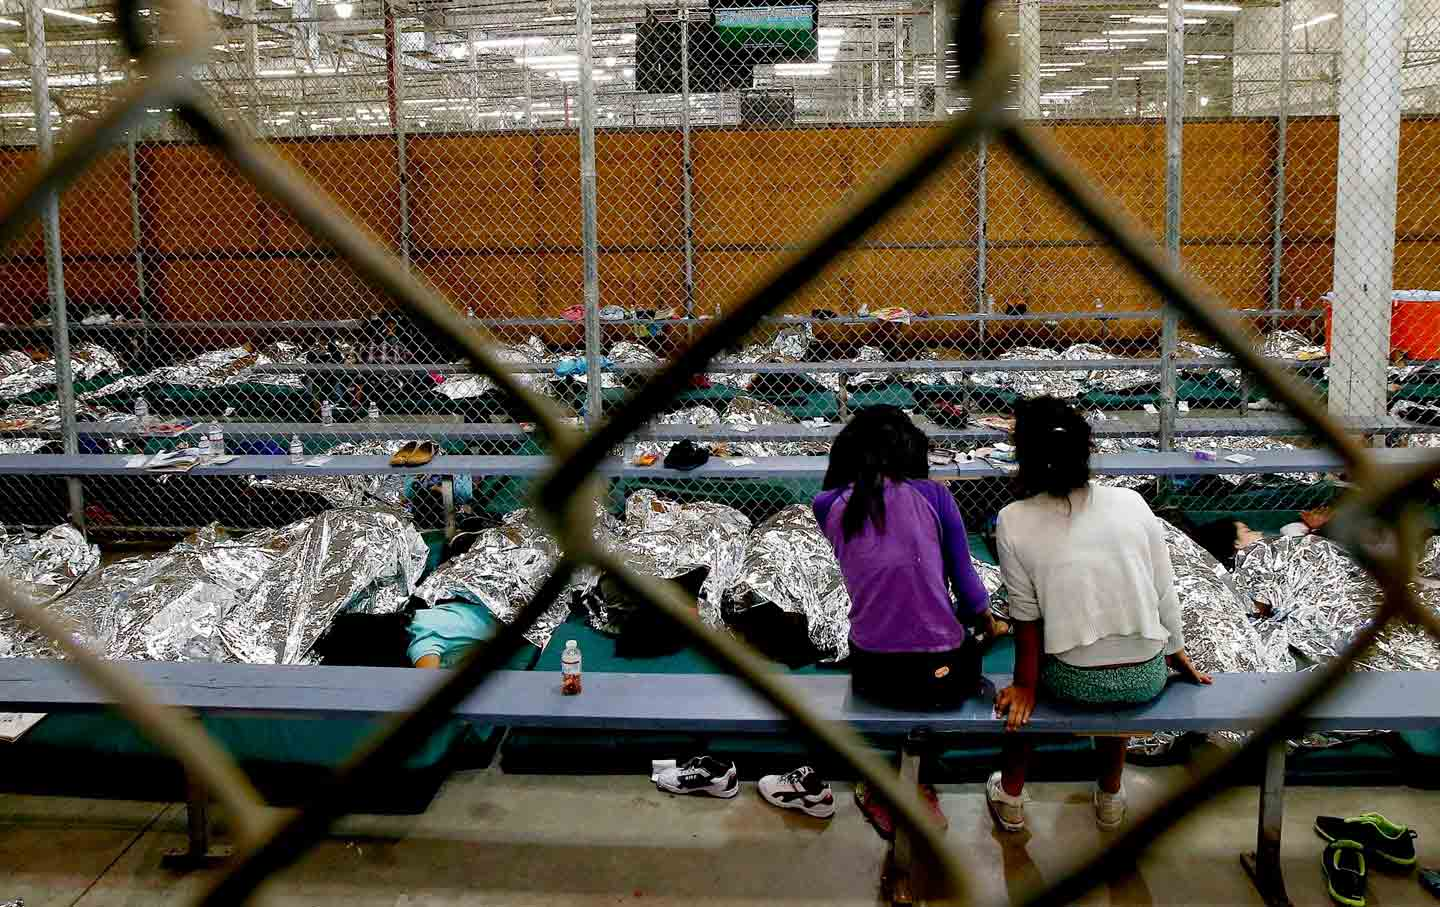 Immigrant Children in Arizona